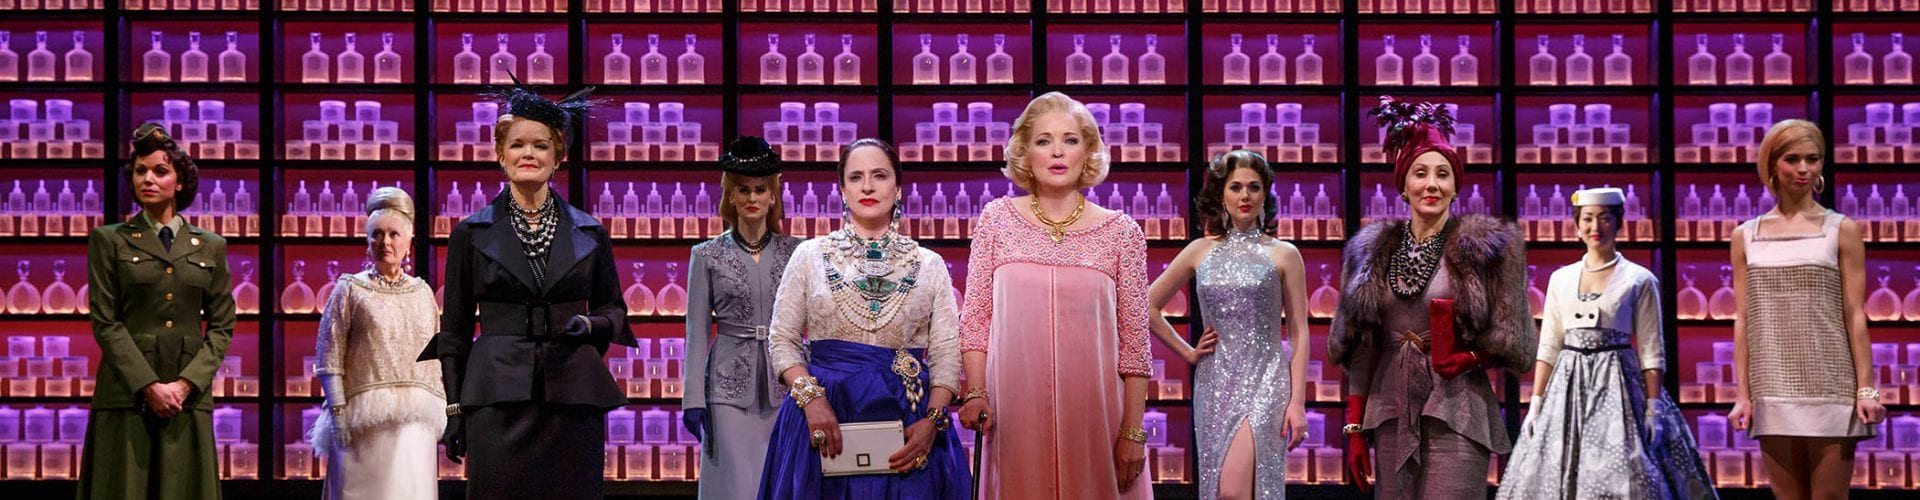 War Paint, with Patti LuPone and Christine Ebersole, Sets Broadway Close Date